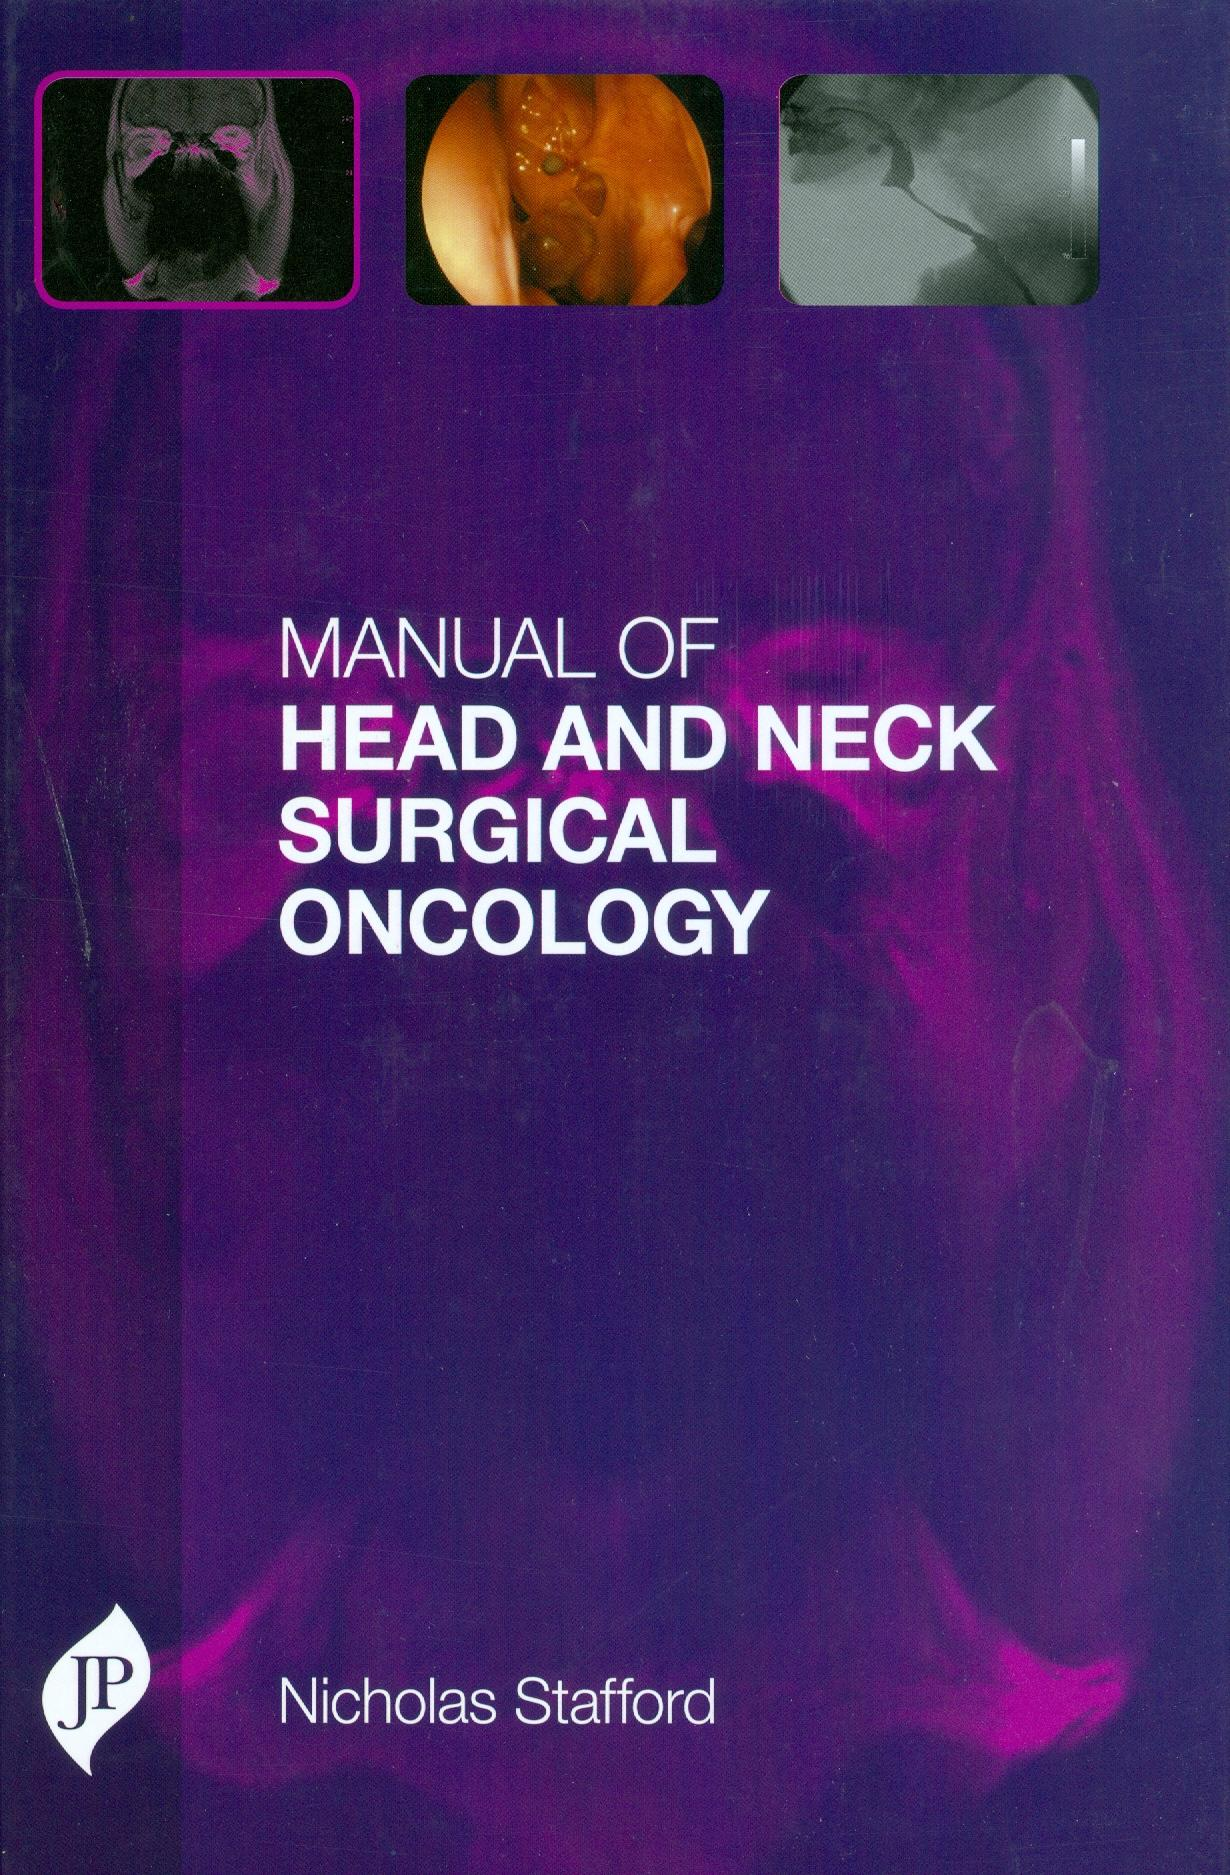 Manual of Head and Neck Surgical Oncology